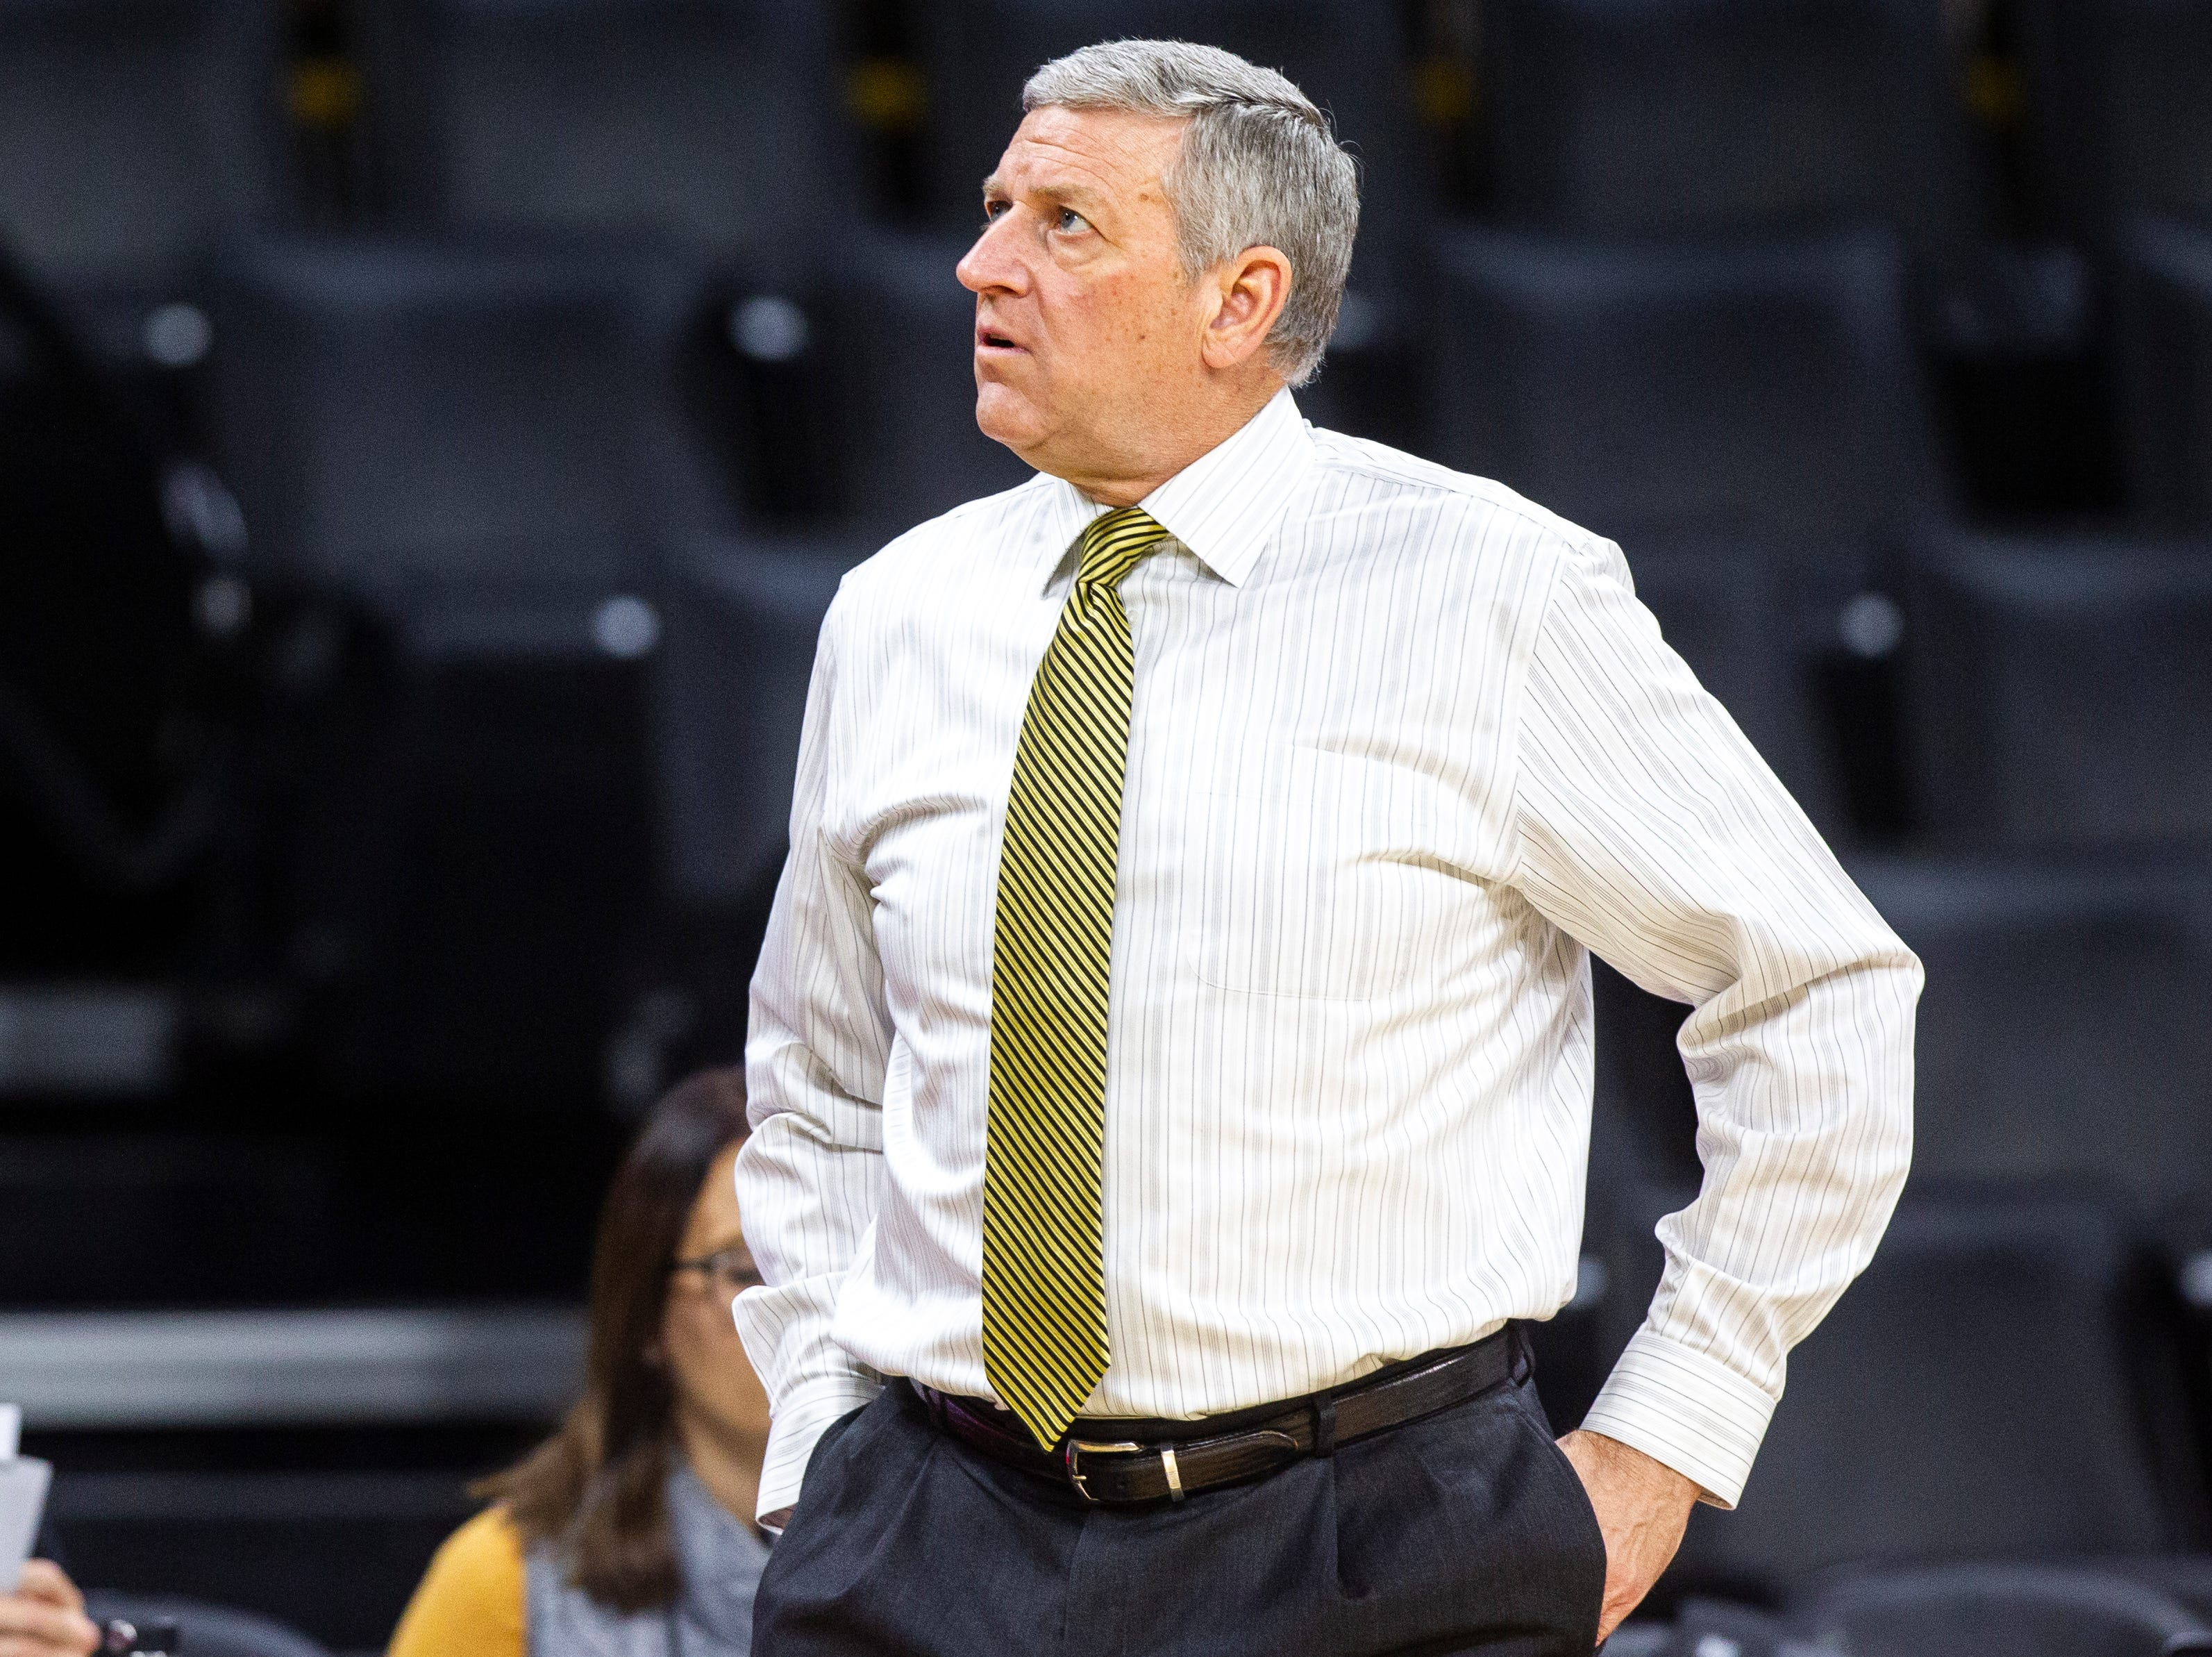 Iowa assistant coach Kirk Speraw is seen before an NCAA men's basketball game on Wednesday, Nov. 21, 2018, at Carver-Hawkeye Arena in Iowa City.